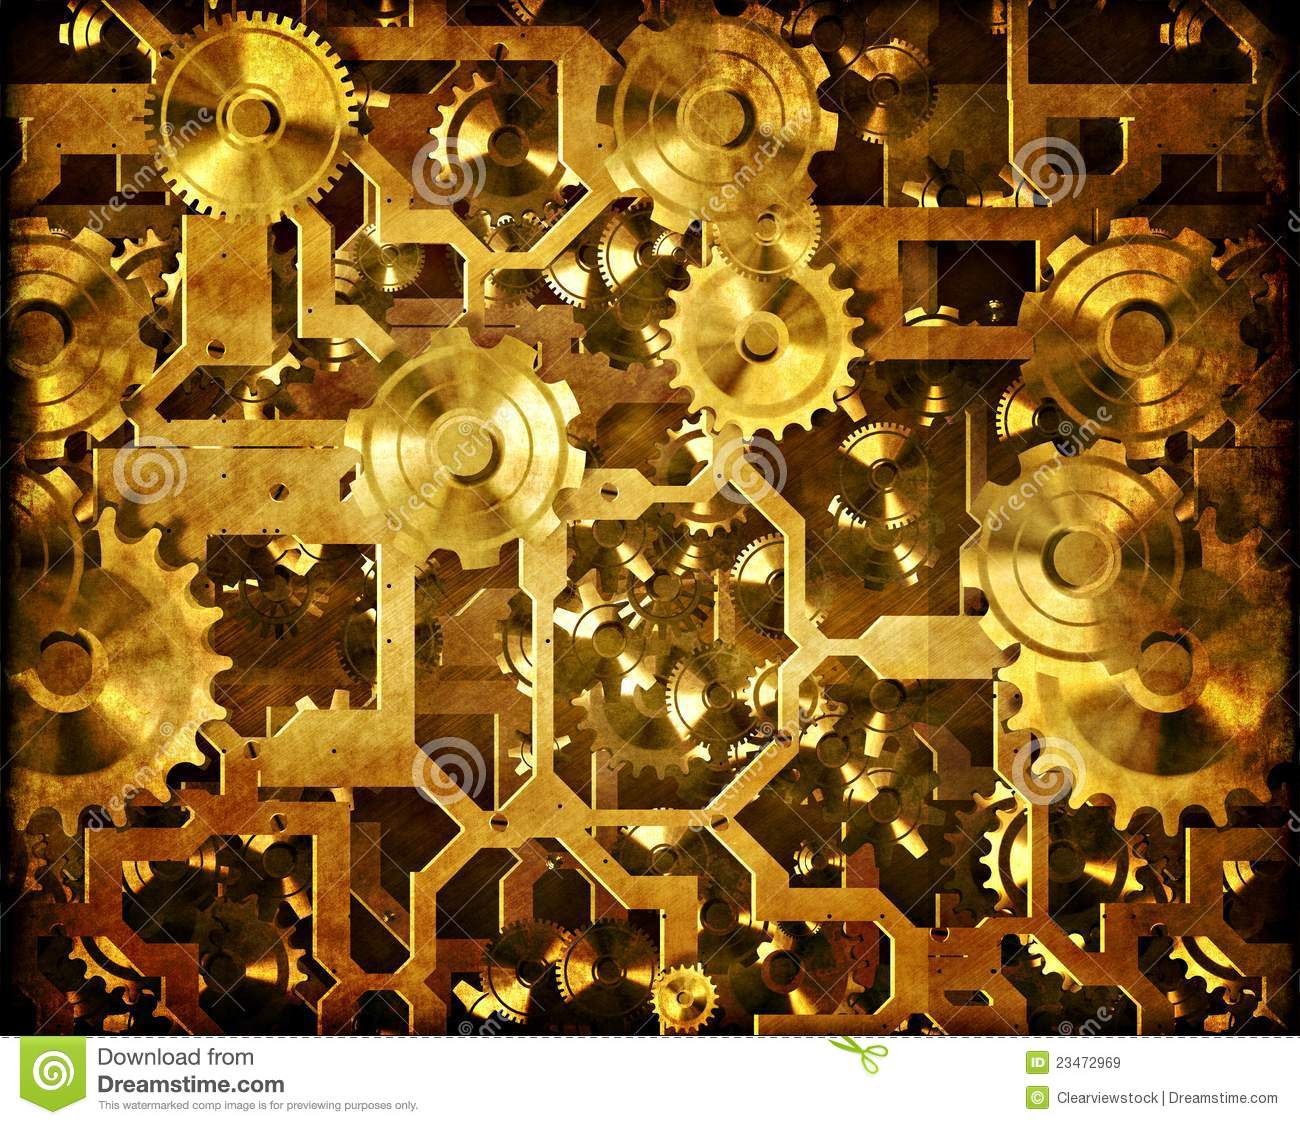 Cogs And Clockwork Steampunk Machinery Royalty Free Stock Images ...